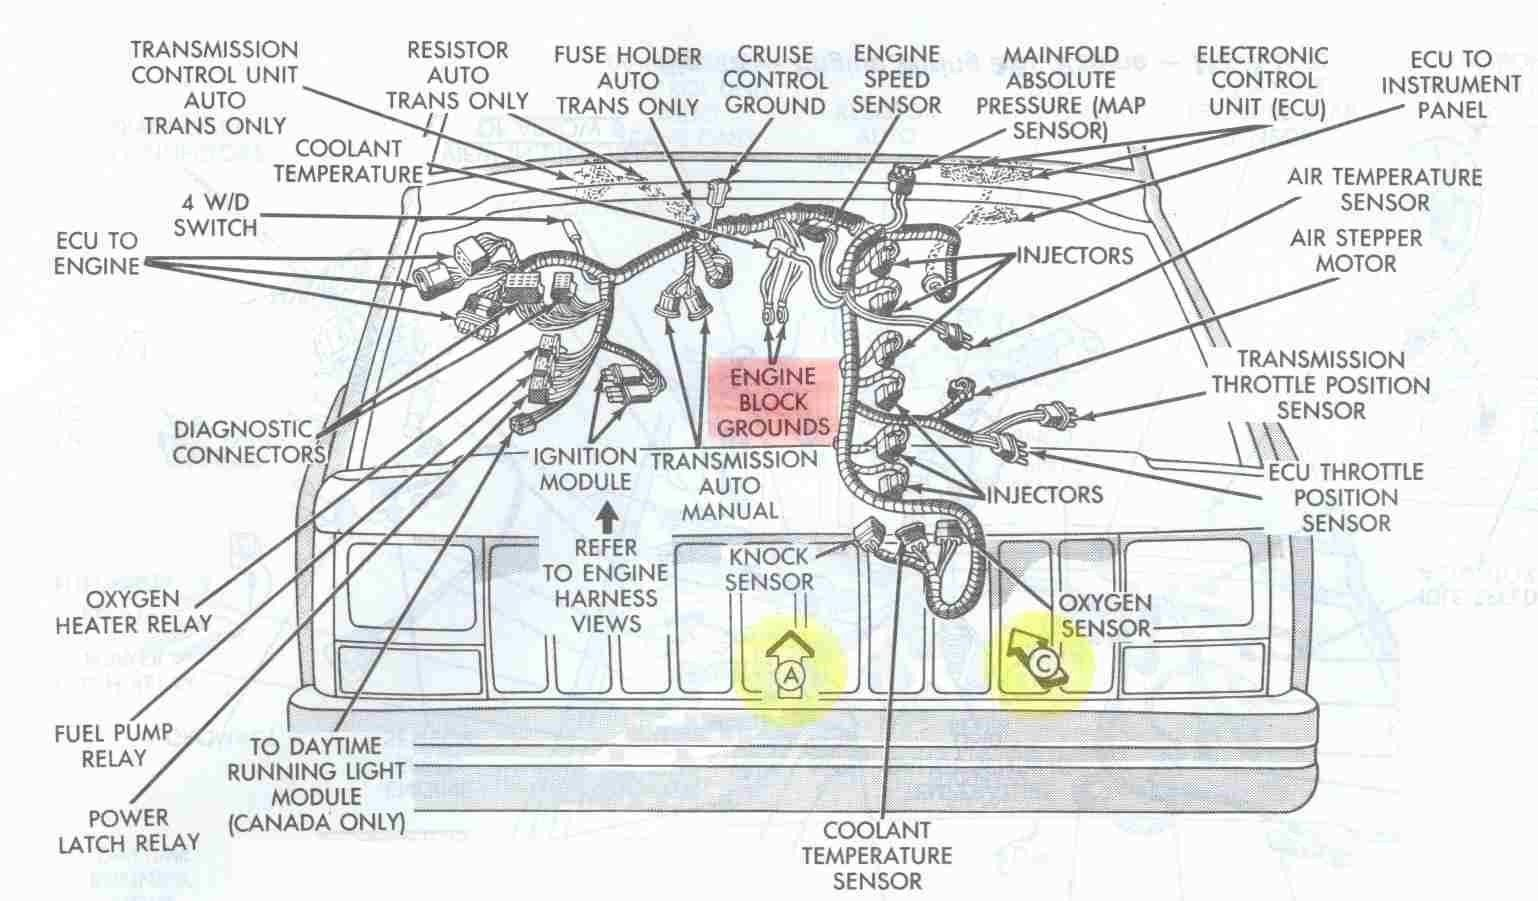 1999 grand cherokee engine diagram - wiring diagram system dry-locate-a -  dry-locate-a.ediliadesign.it  ediliadesign.it